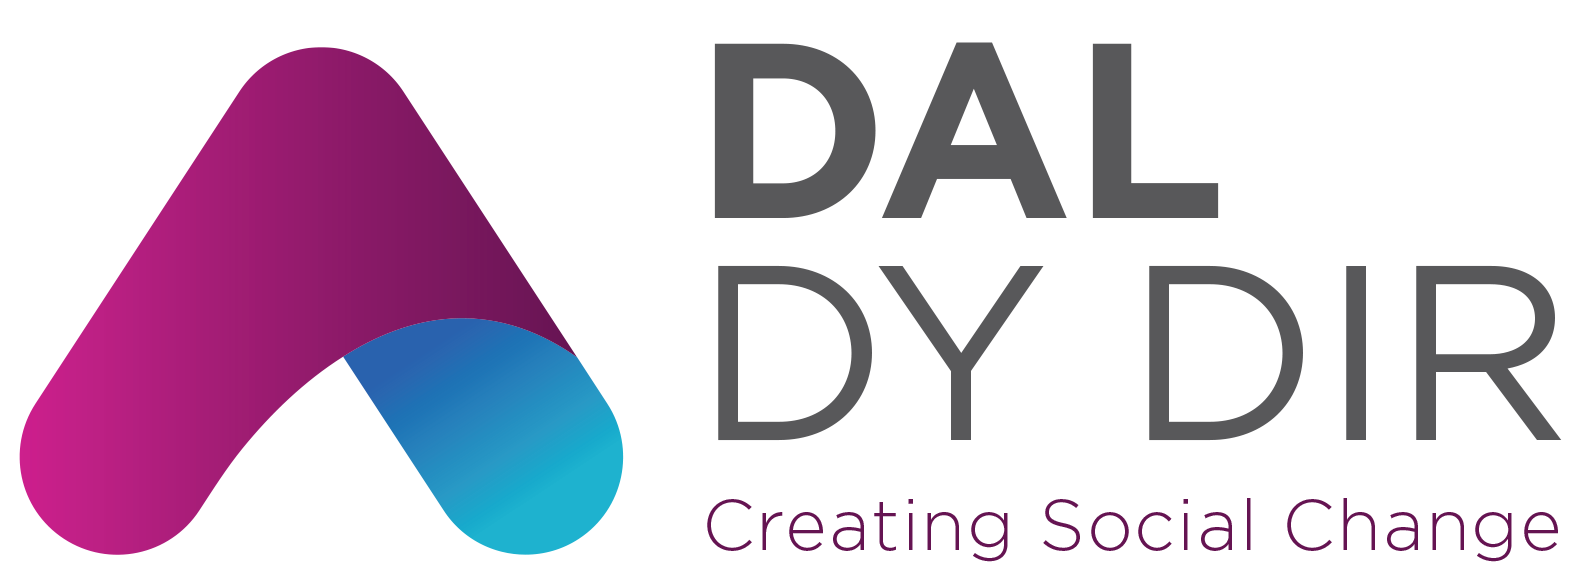 Dal Dy Dir Co-produce services for people with disabilities and other marginalised groups & hard to reach sectors of the community.